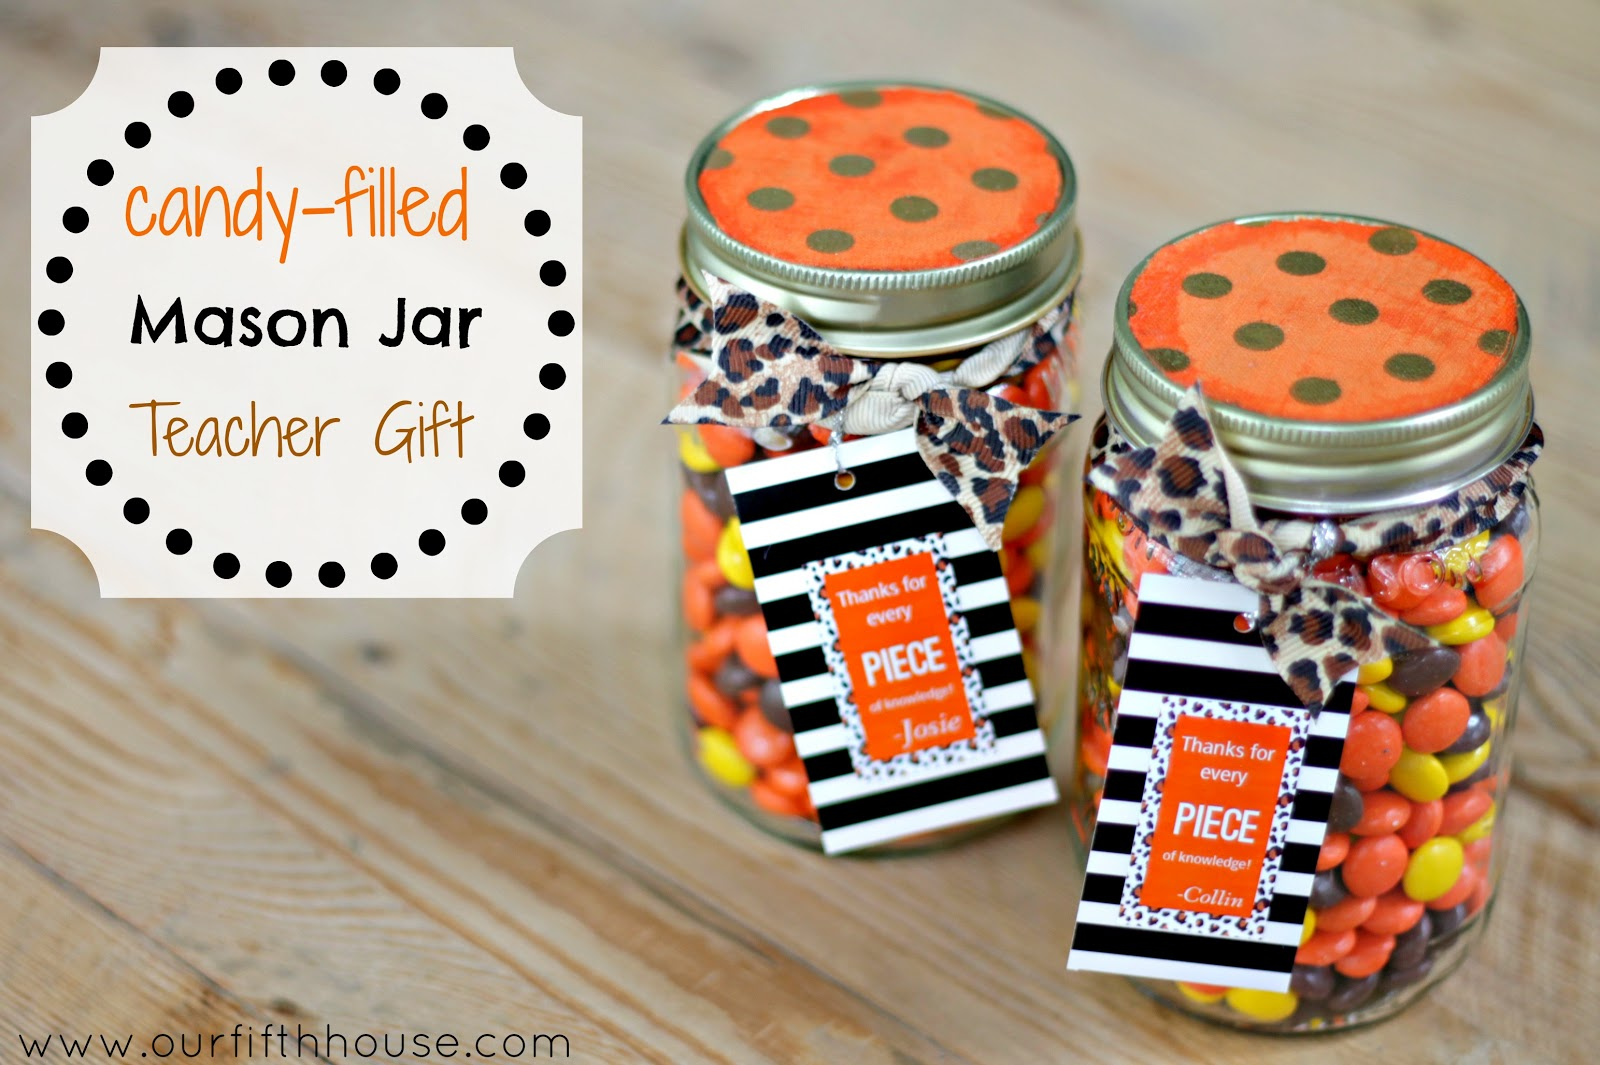 candy filled mason jar teacher gift idea from our fifth house